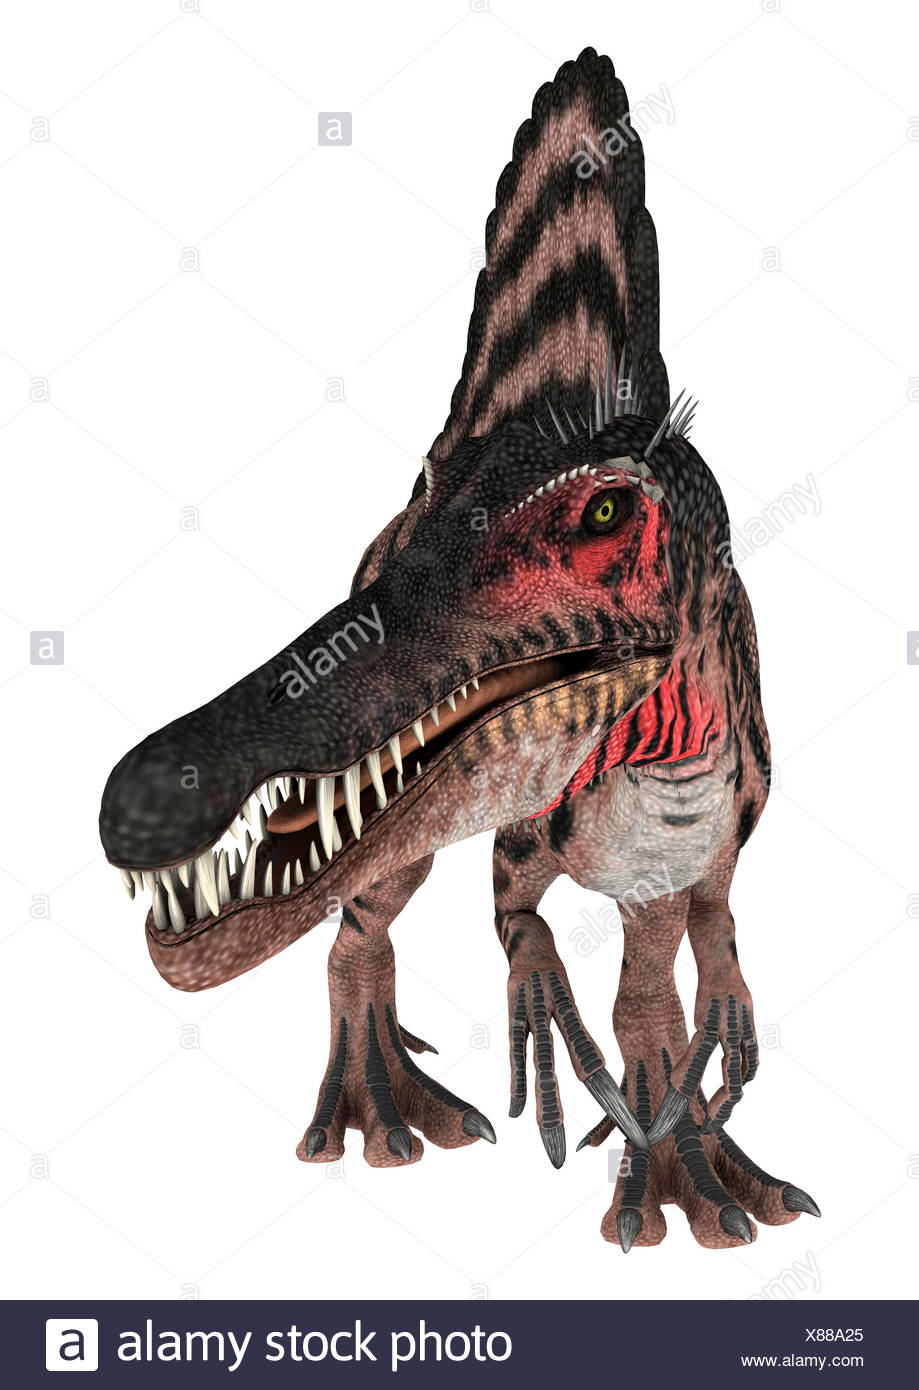 3D Rendering Dinosaur Spinosaurus on White - Stock Image